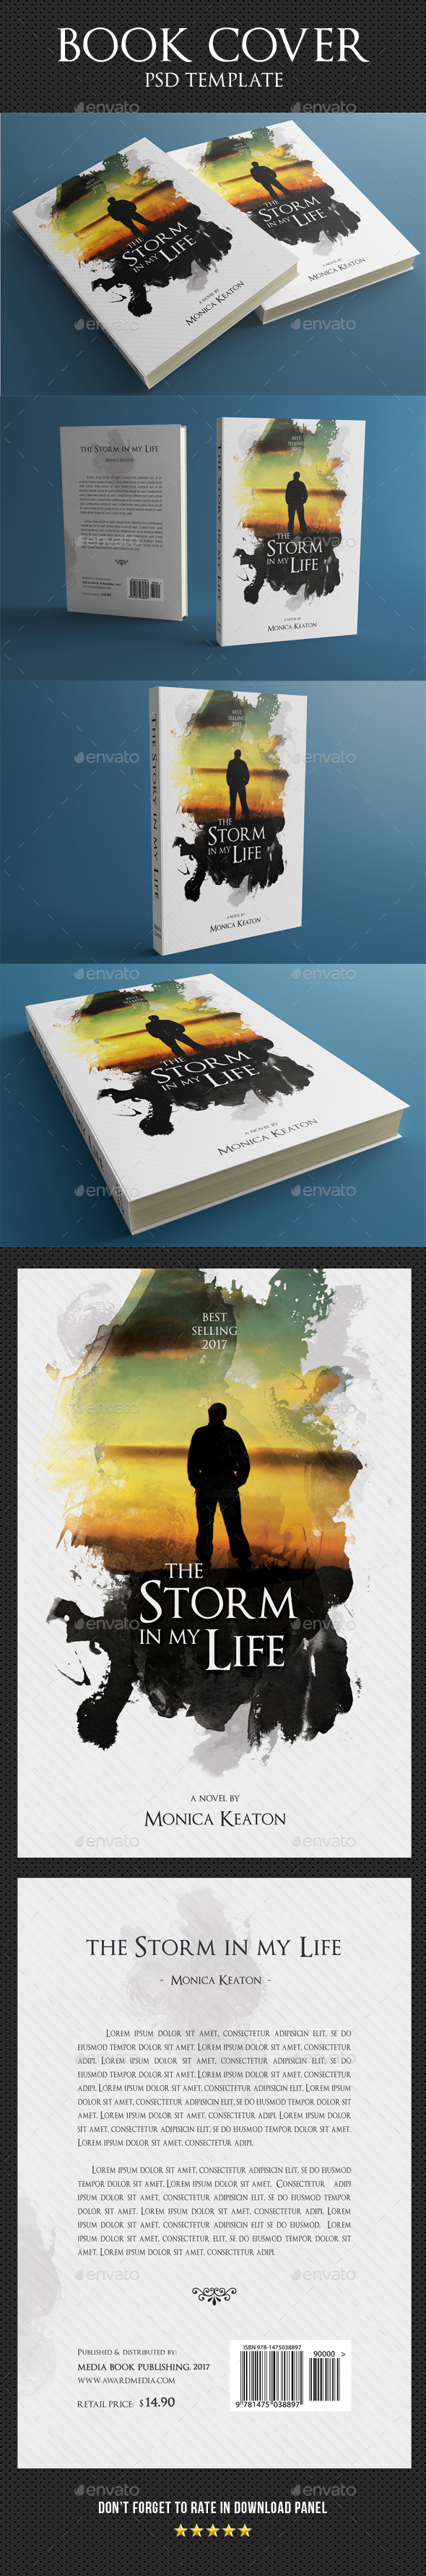 Book Cover Template 37 - Miscellaneous Print Templates